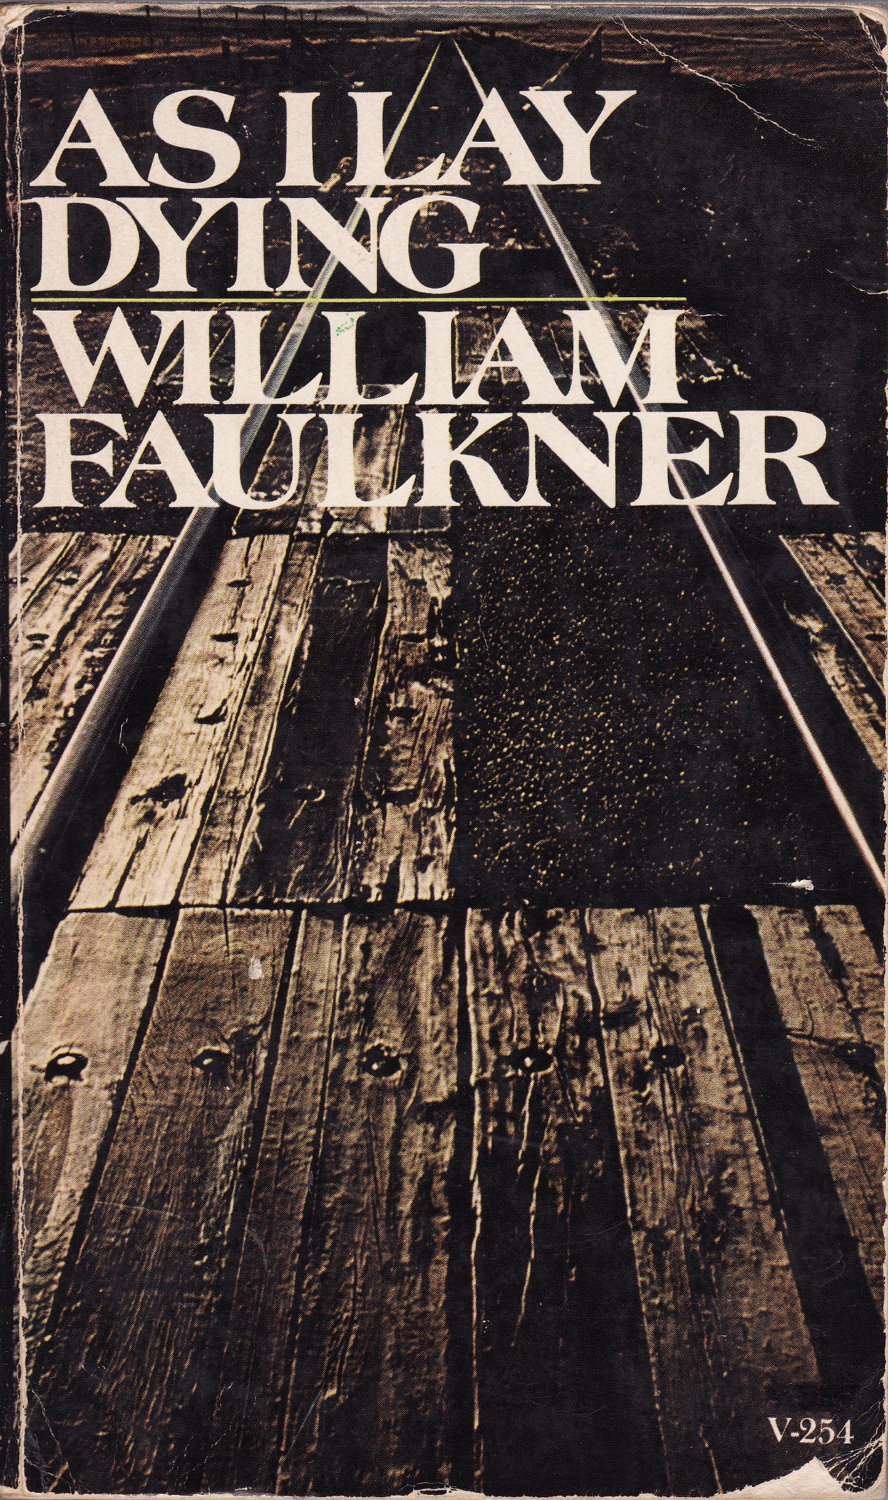 'My children were of me alone': Maternal Influence in Faulkner's As I Lay Dying